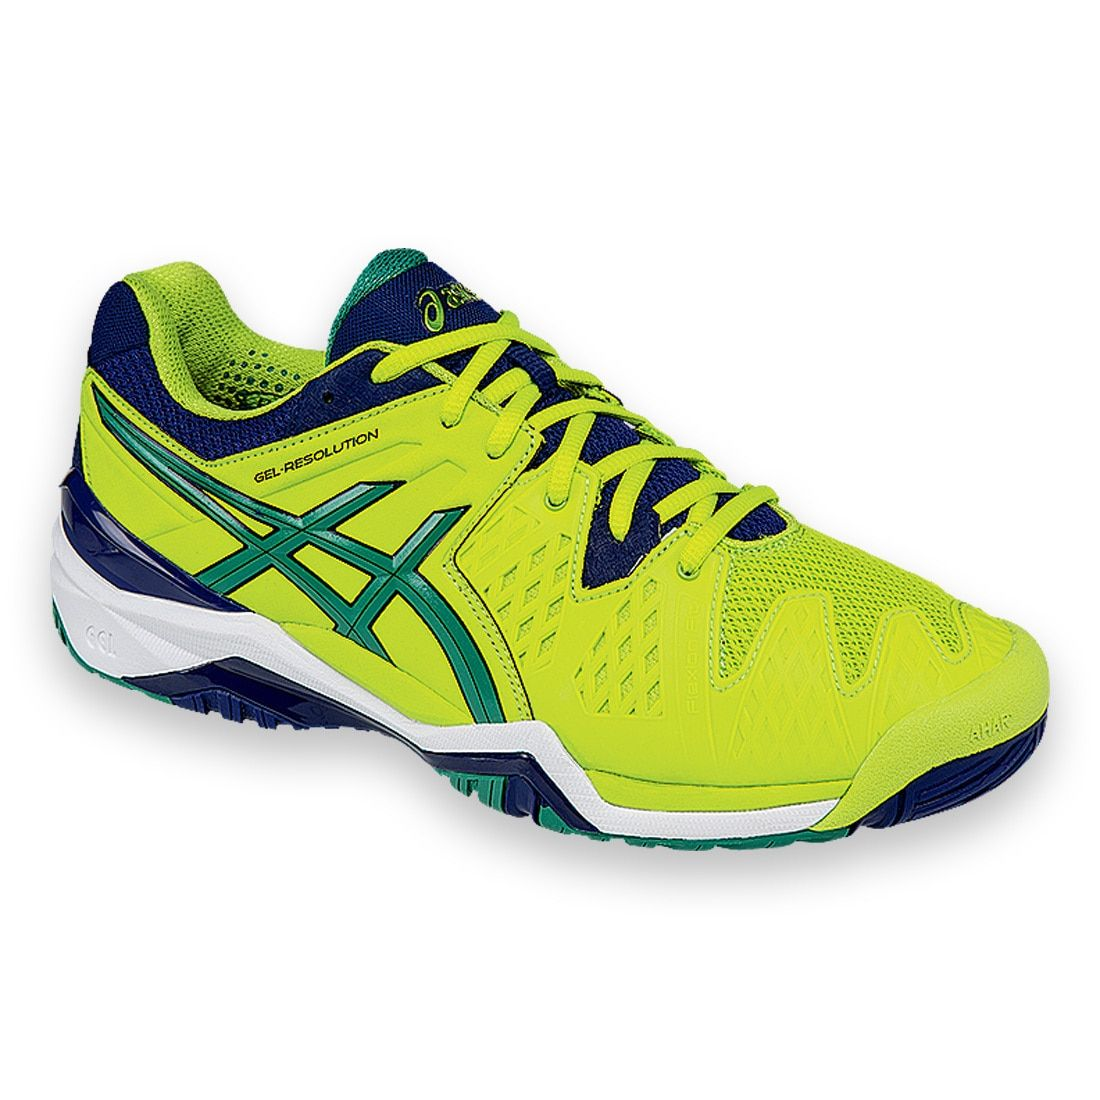 Asics Gel Resolution 6 Men's Tennis Shoe by Asics | Products ...